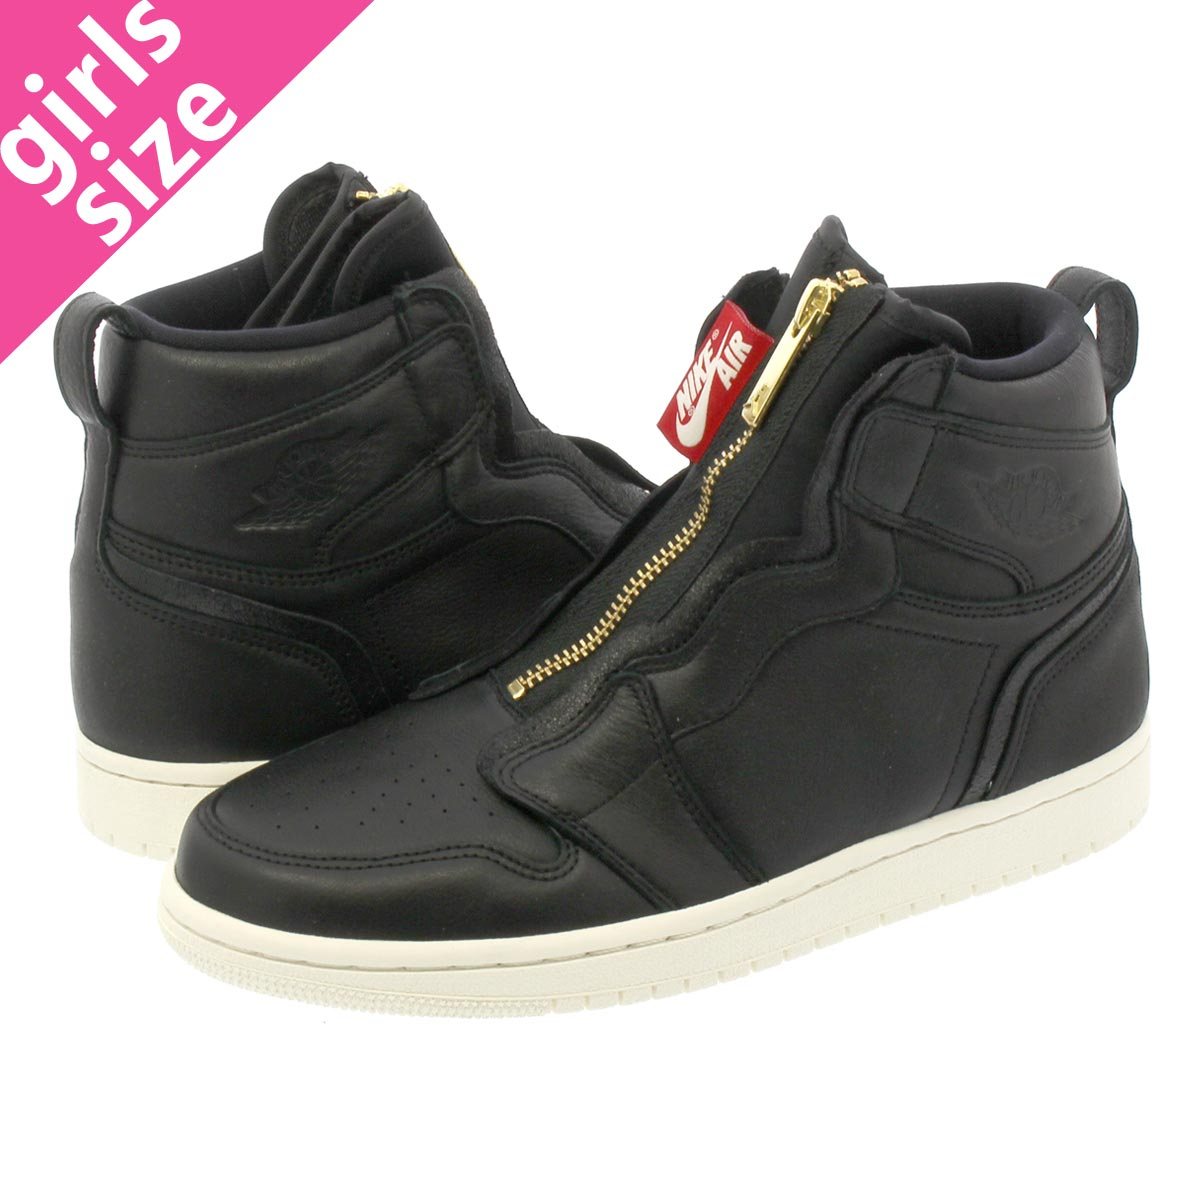 lowest price 148b2 f29d8 NIKE WMNS AIR JORDAN 1 HIGH ZIP Nike women Air Jordan 1 high zip BLACK SAIL UNIVERSITY  RED aq3742-016-l